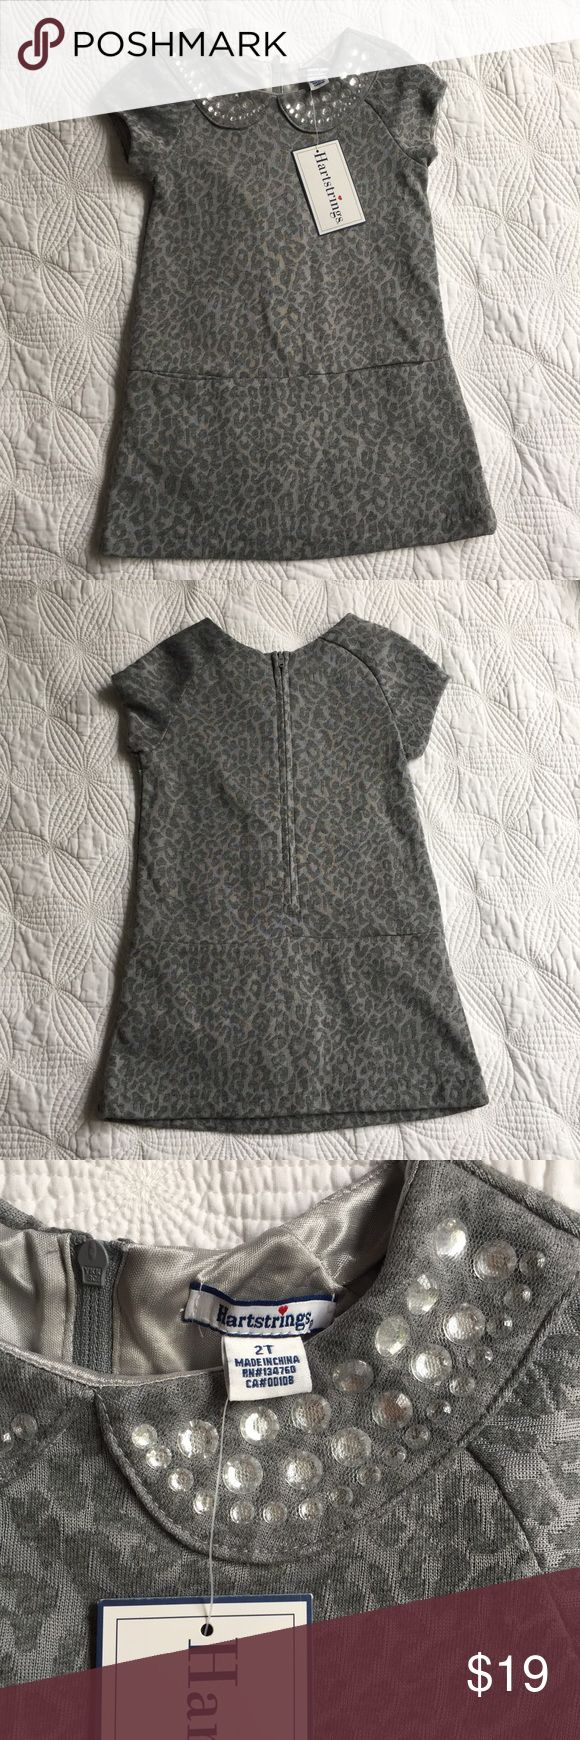 Hartstrings Gary Leopard Print Shift Dress NWT Hartstrings gray leopard print shift dress with jeweled Peter Pan collar. Size 2T. Jewels in collar are covered with matching mesh. Really cute. Heavy Jersey fabric. Hartstrings Dresses Casual